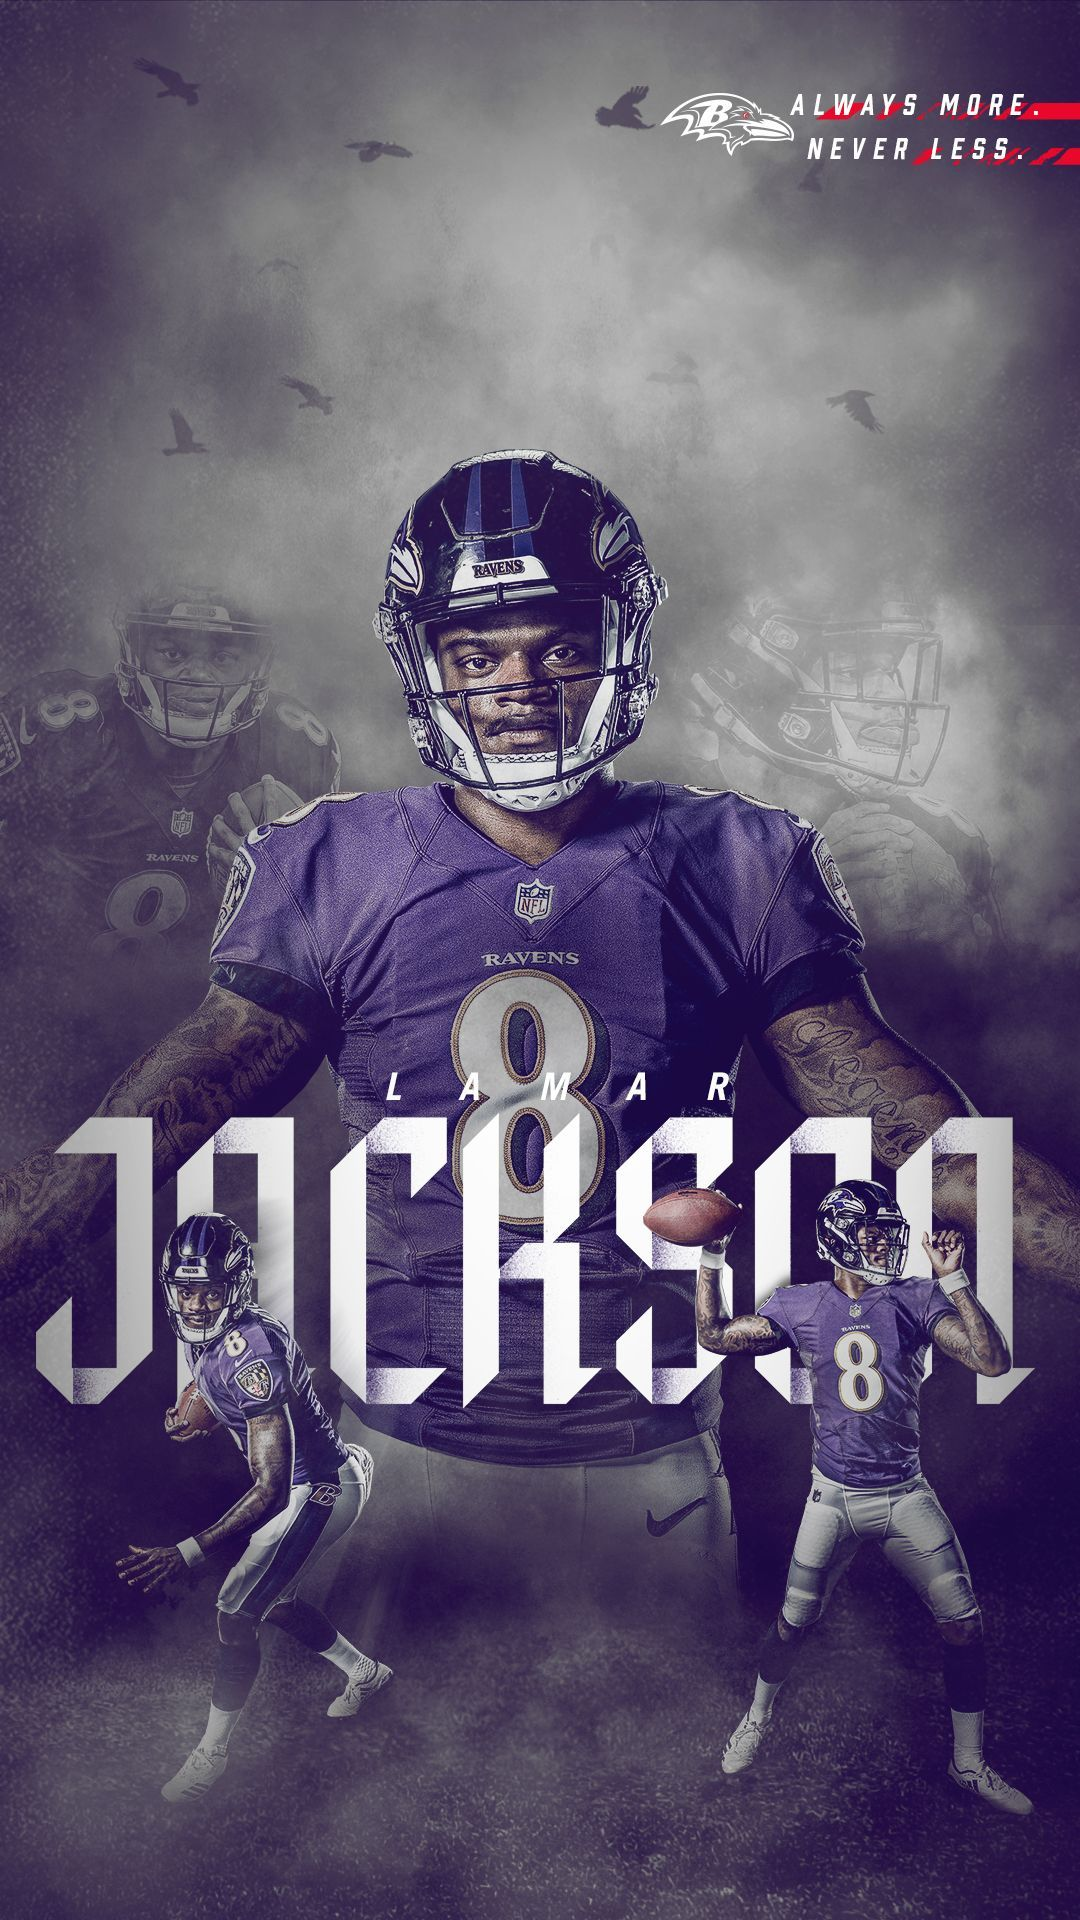 Cool Lamar Jackson Wallpaper Hd In 2020 Lamar Jackson Wallpaper Lamar Jackson Lamar